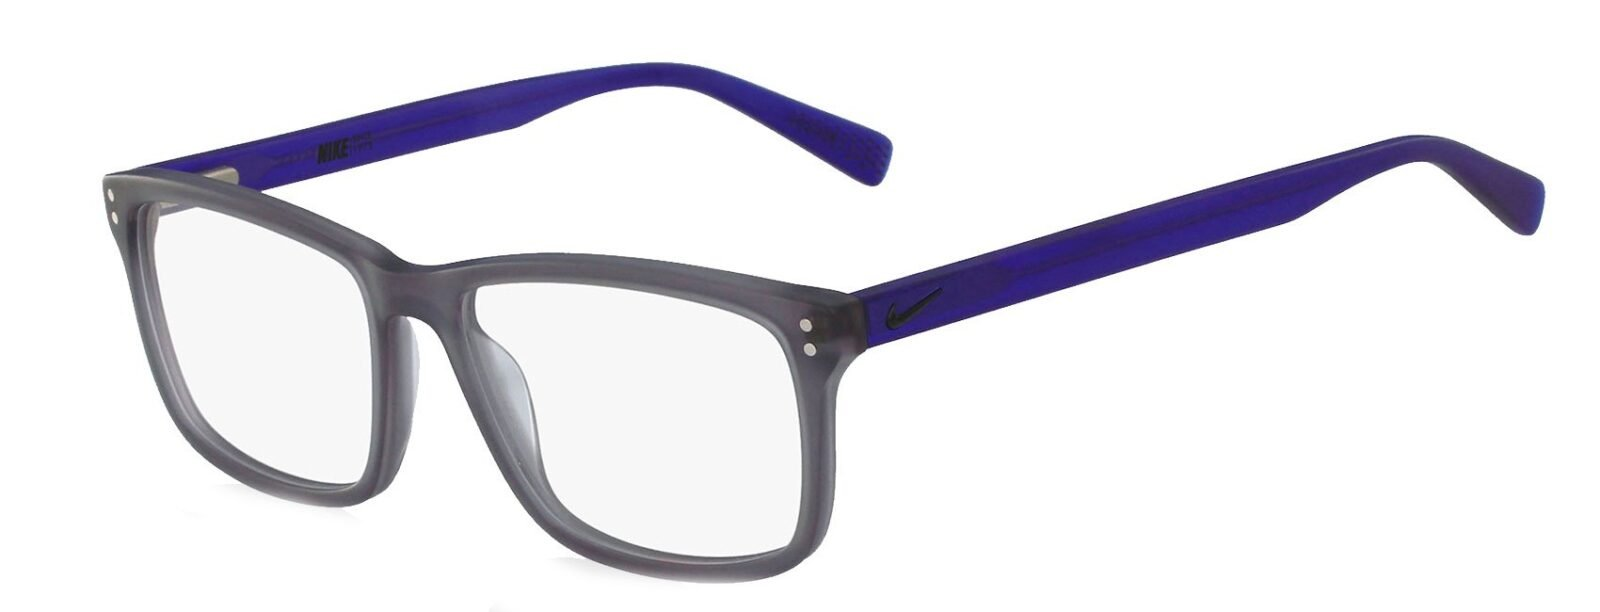 Nike 7238 Lead Glasses